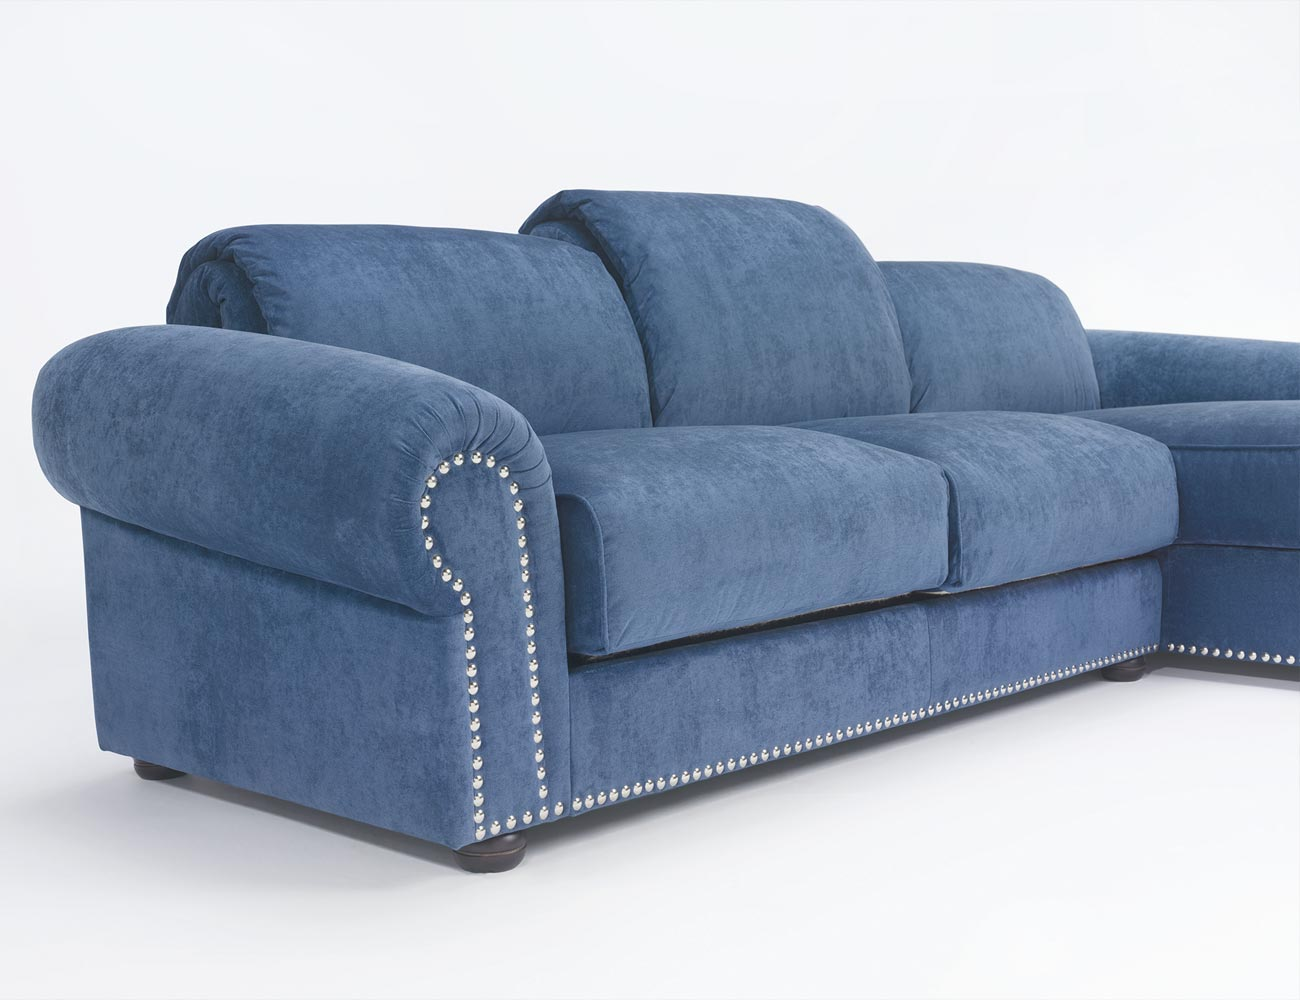 Sofa chaiselongue gran lujo decorativo azul 136